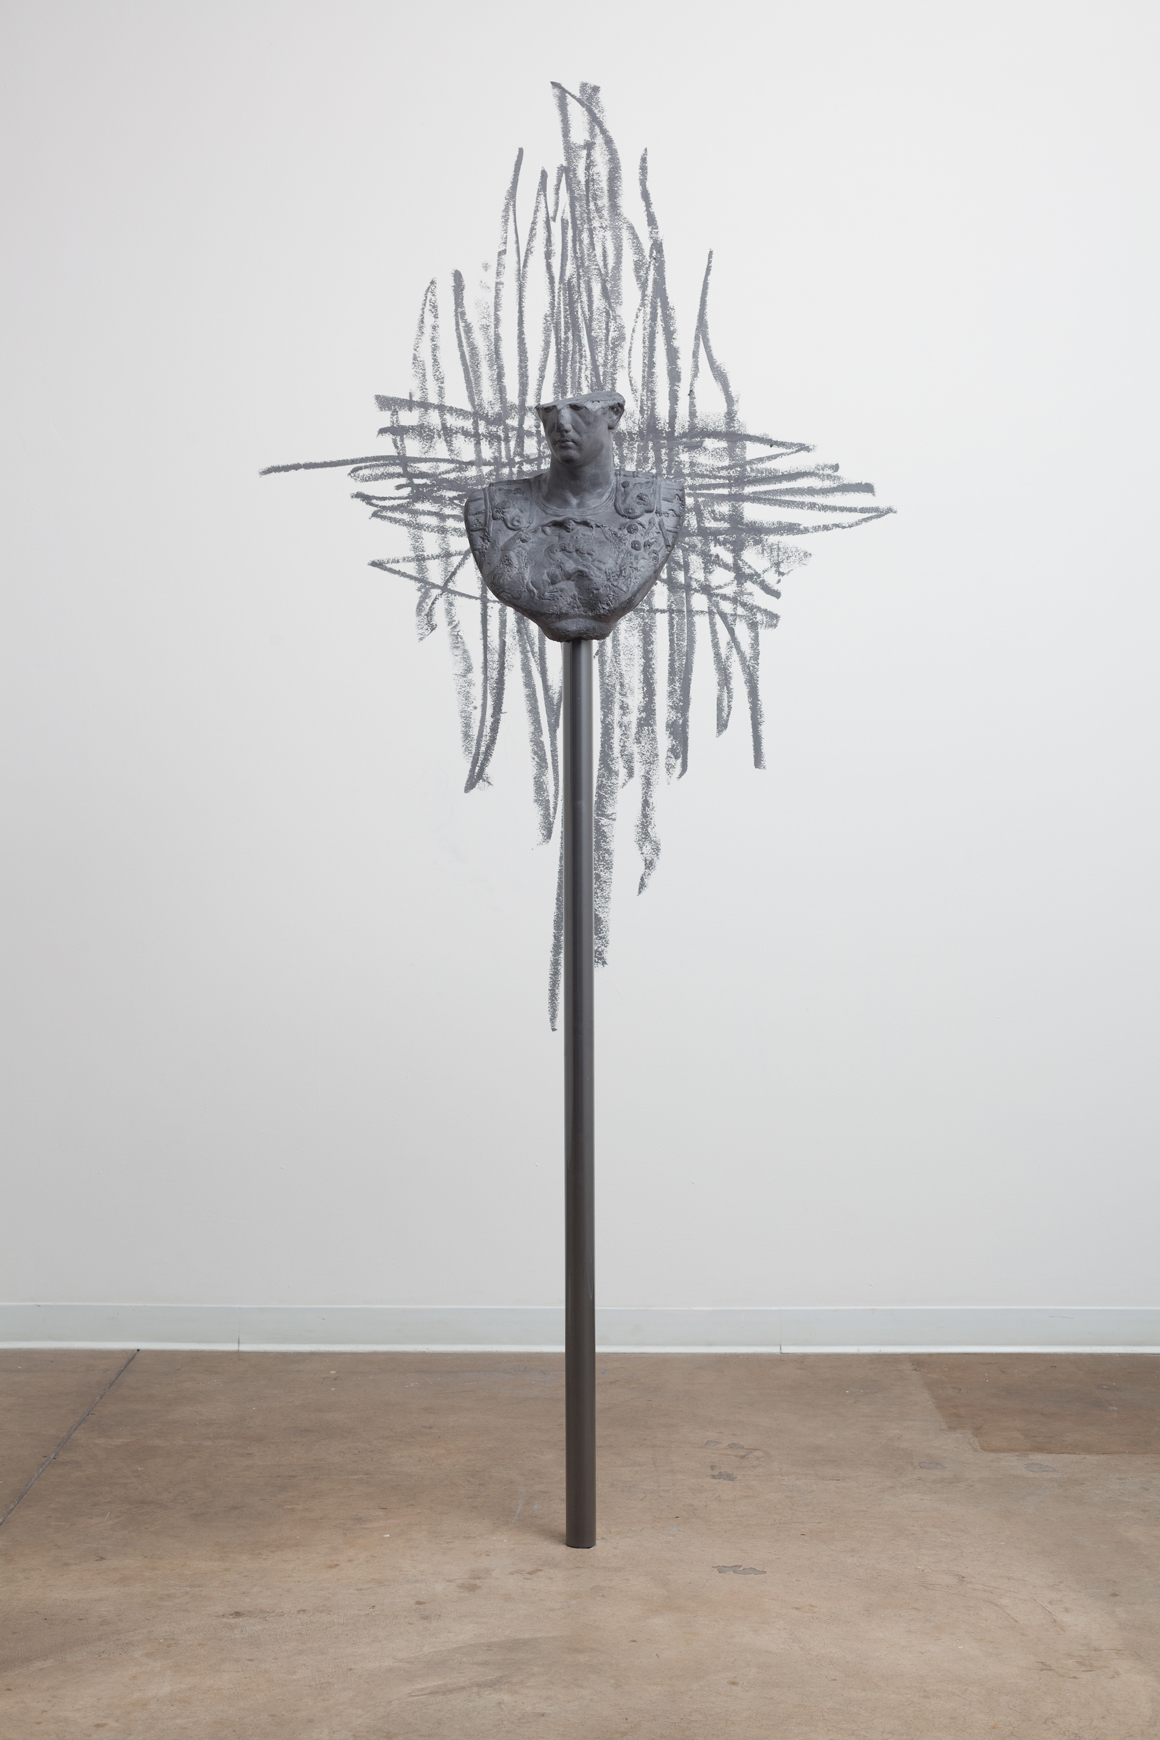 """<p><span class=""""name"""">Dmitri Obergfell</span><br><em>Statues Also Die (Whit)</em><span class='media'>Plaster, graphite, powder coated steel</span>90 x 65 x 56 in (228.6 x 165.1 x 142.2 cm)<br>2015<br><a class='inquire' href='mailto:info@gildargallery.com?subject=Artwork Inquiry DOBE0020&body=I am interested in finding out more about Statues Also Die (Whit) by Dmitri Obergfell'>Inquire</a></p>"""